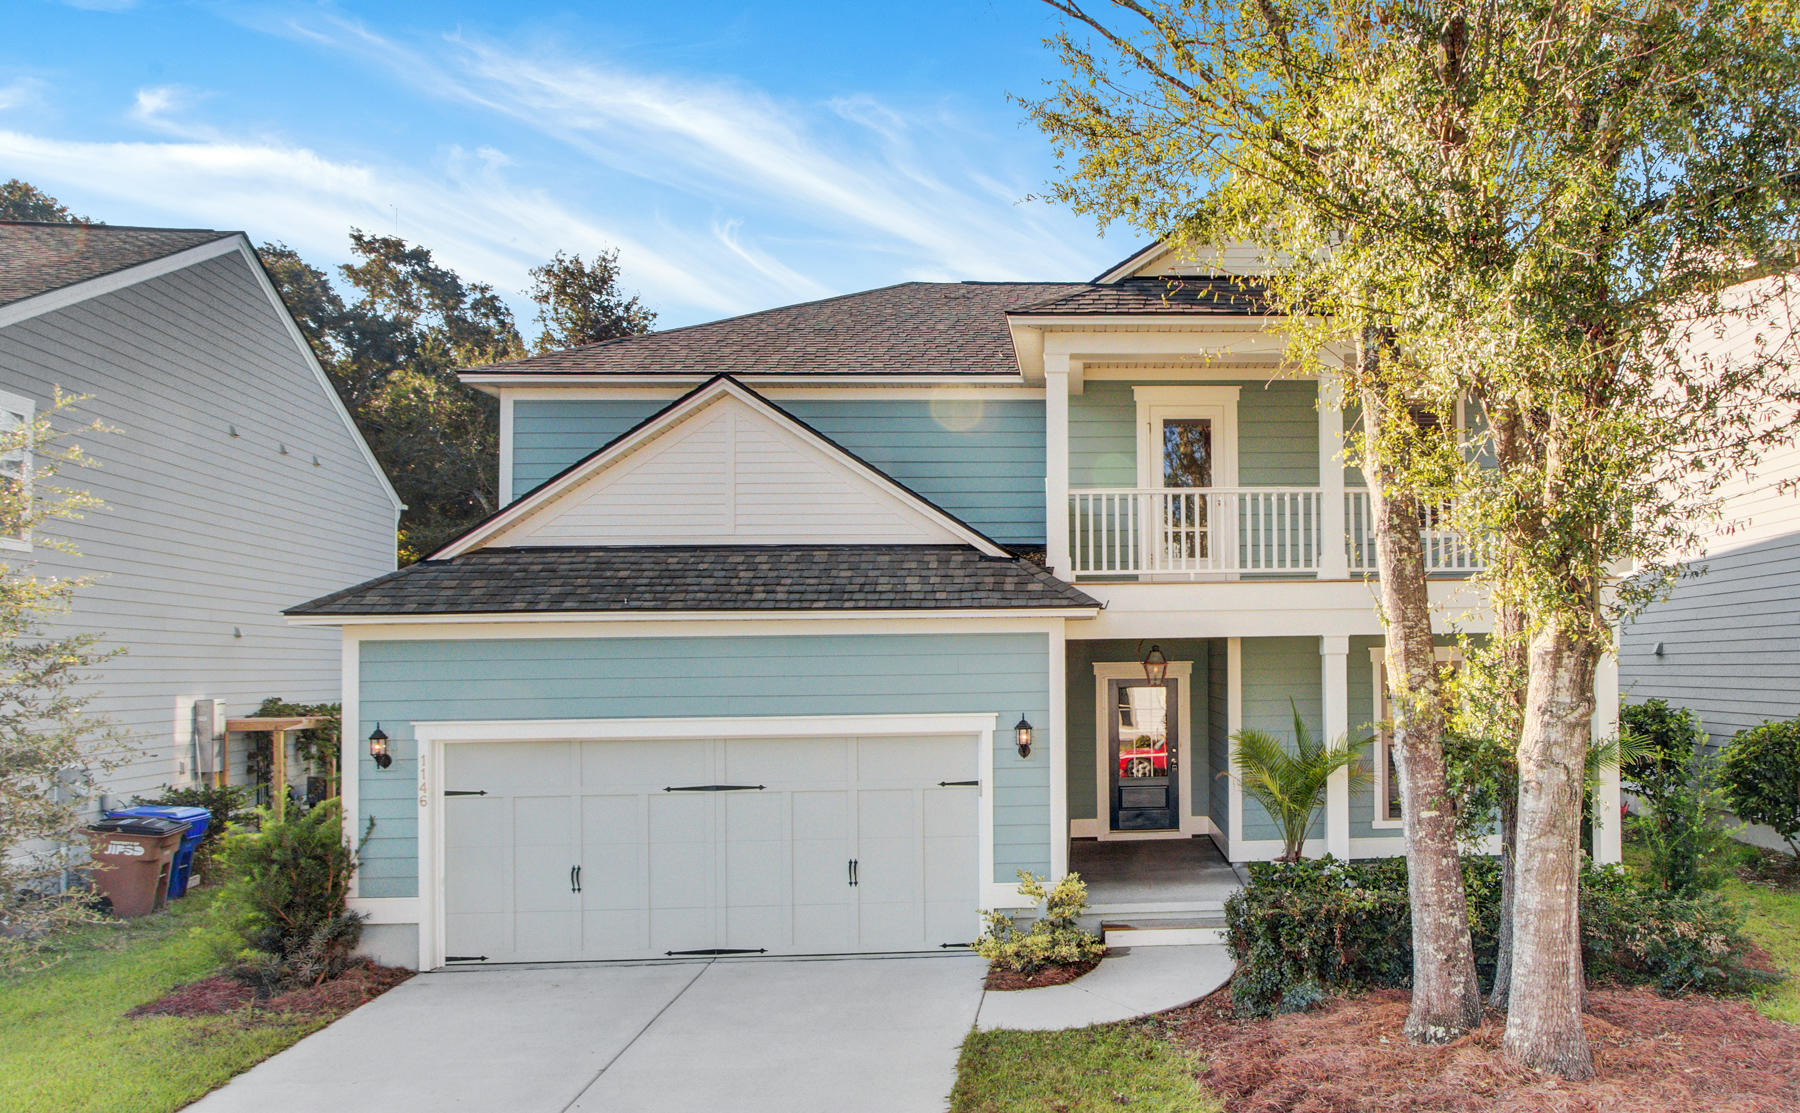 Dills Bluff Homes For Sale - 1146 Bright, Charleston, SC - 27